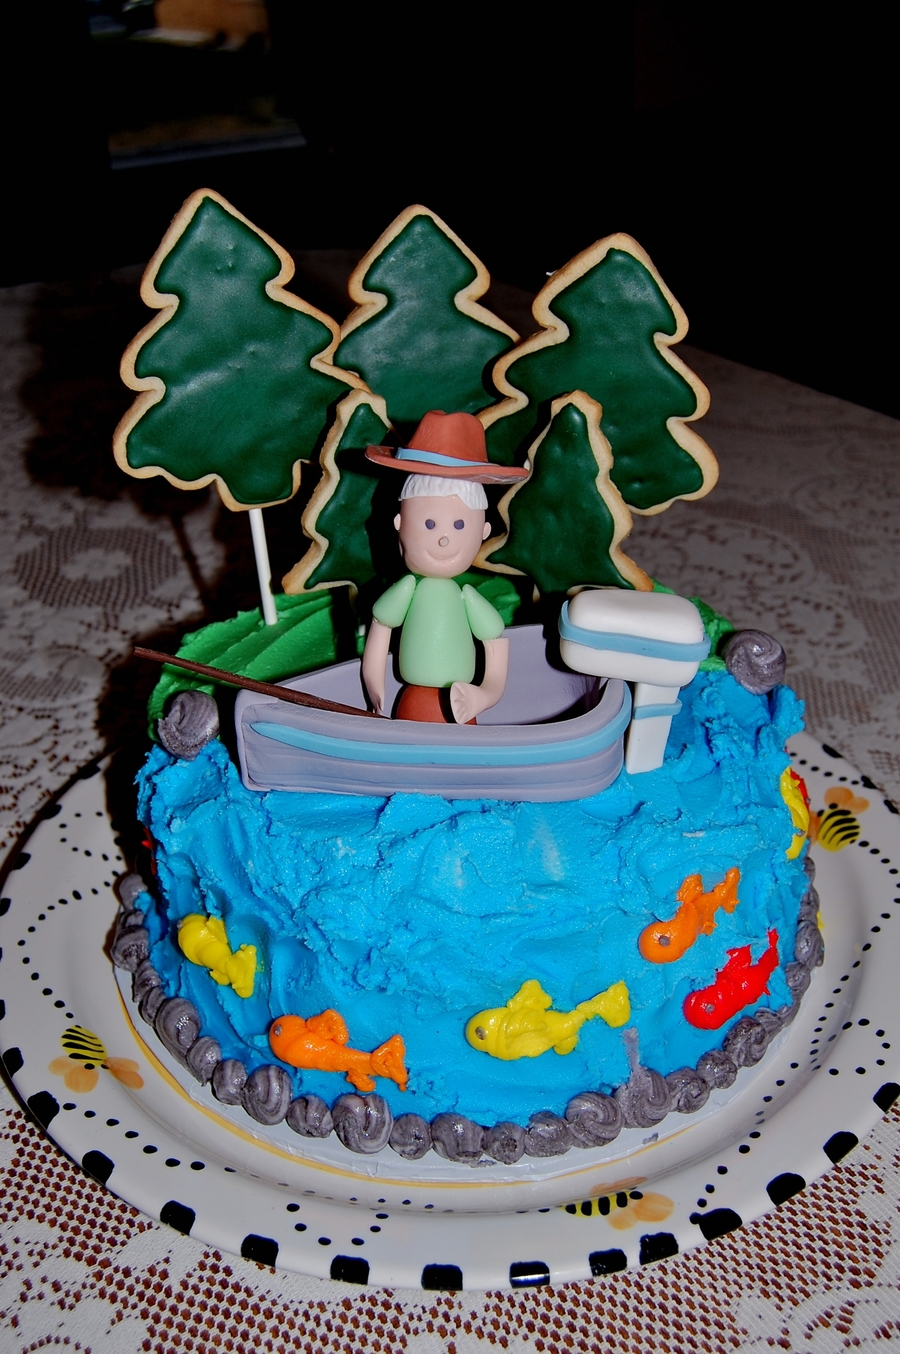 Fishing Fun on Cake Central